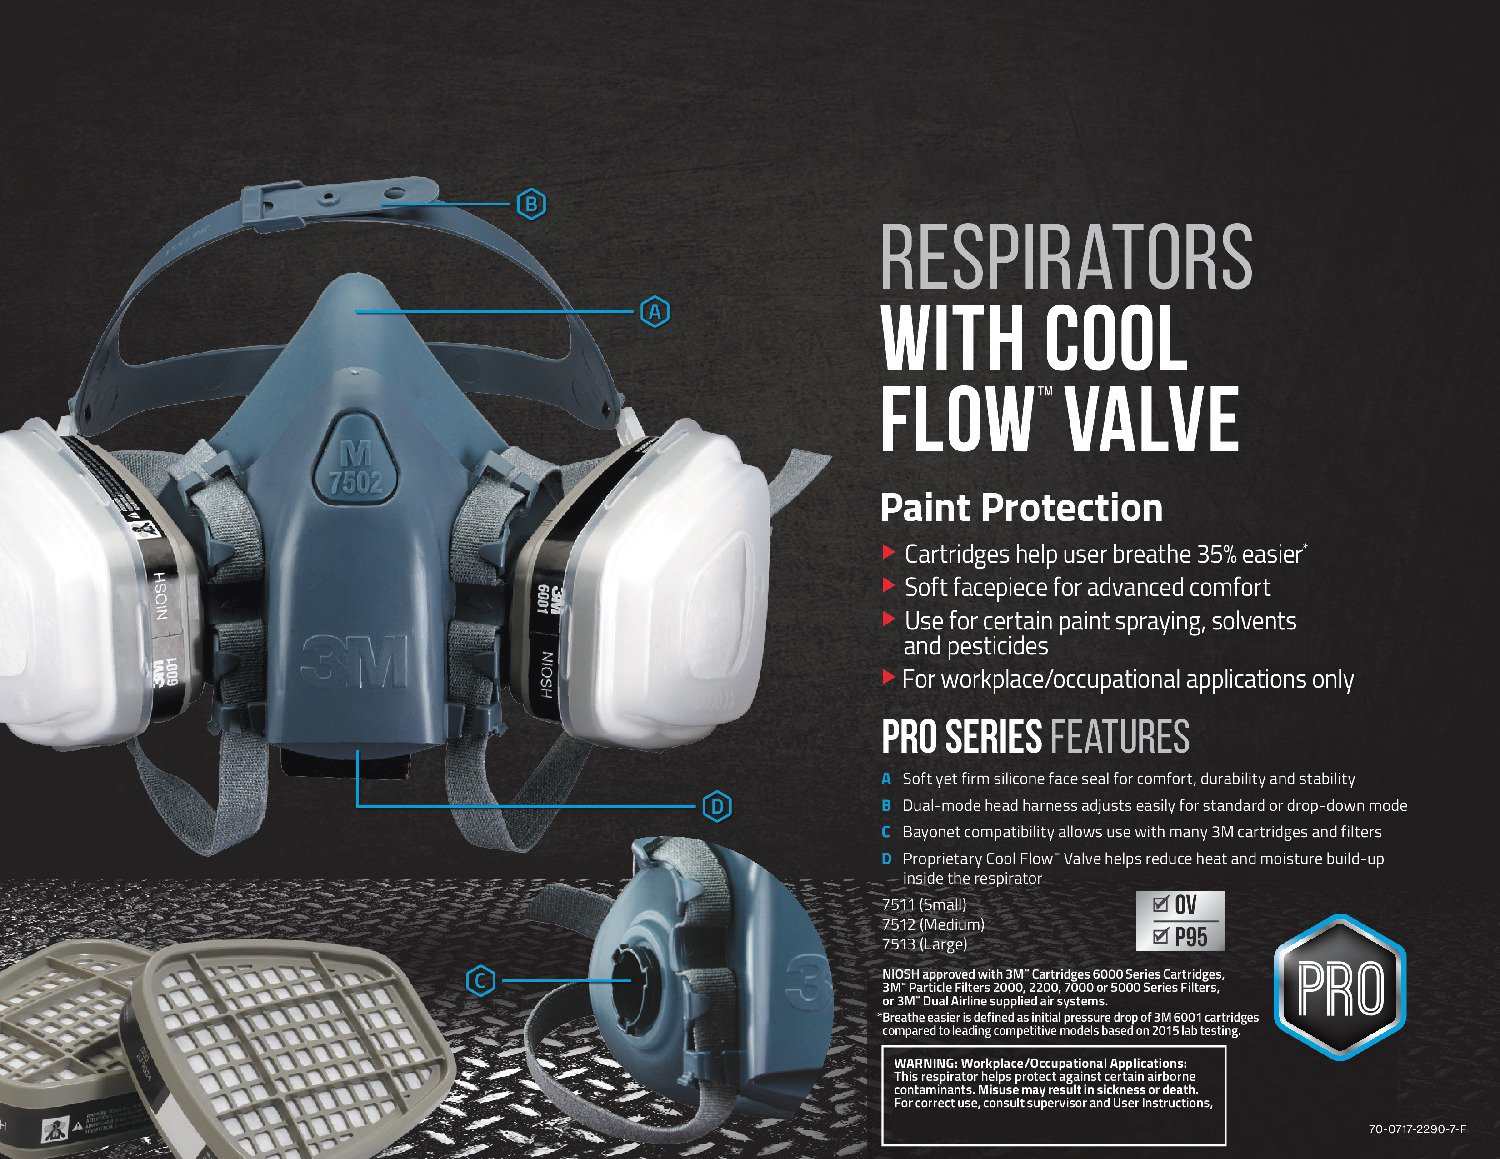 3M 7511PA1-A-PS Professional HalfMask Organic Vapor, N95 Respirator Assembly, Small by 3M Safety (Image #6)